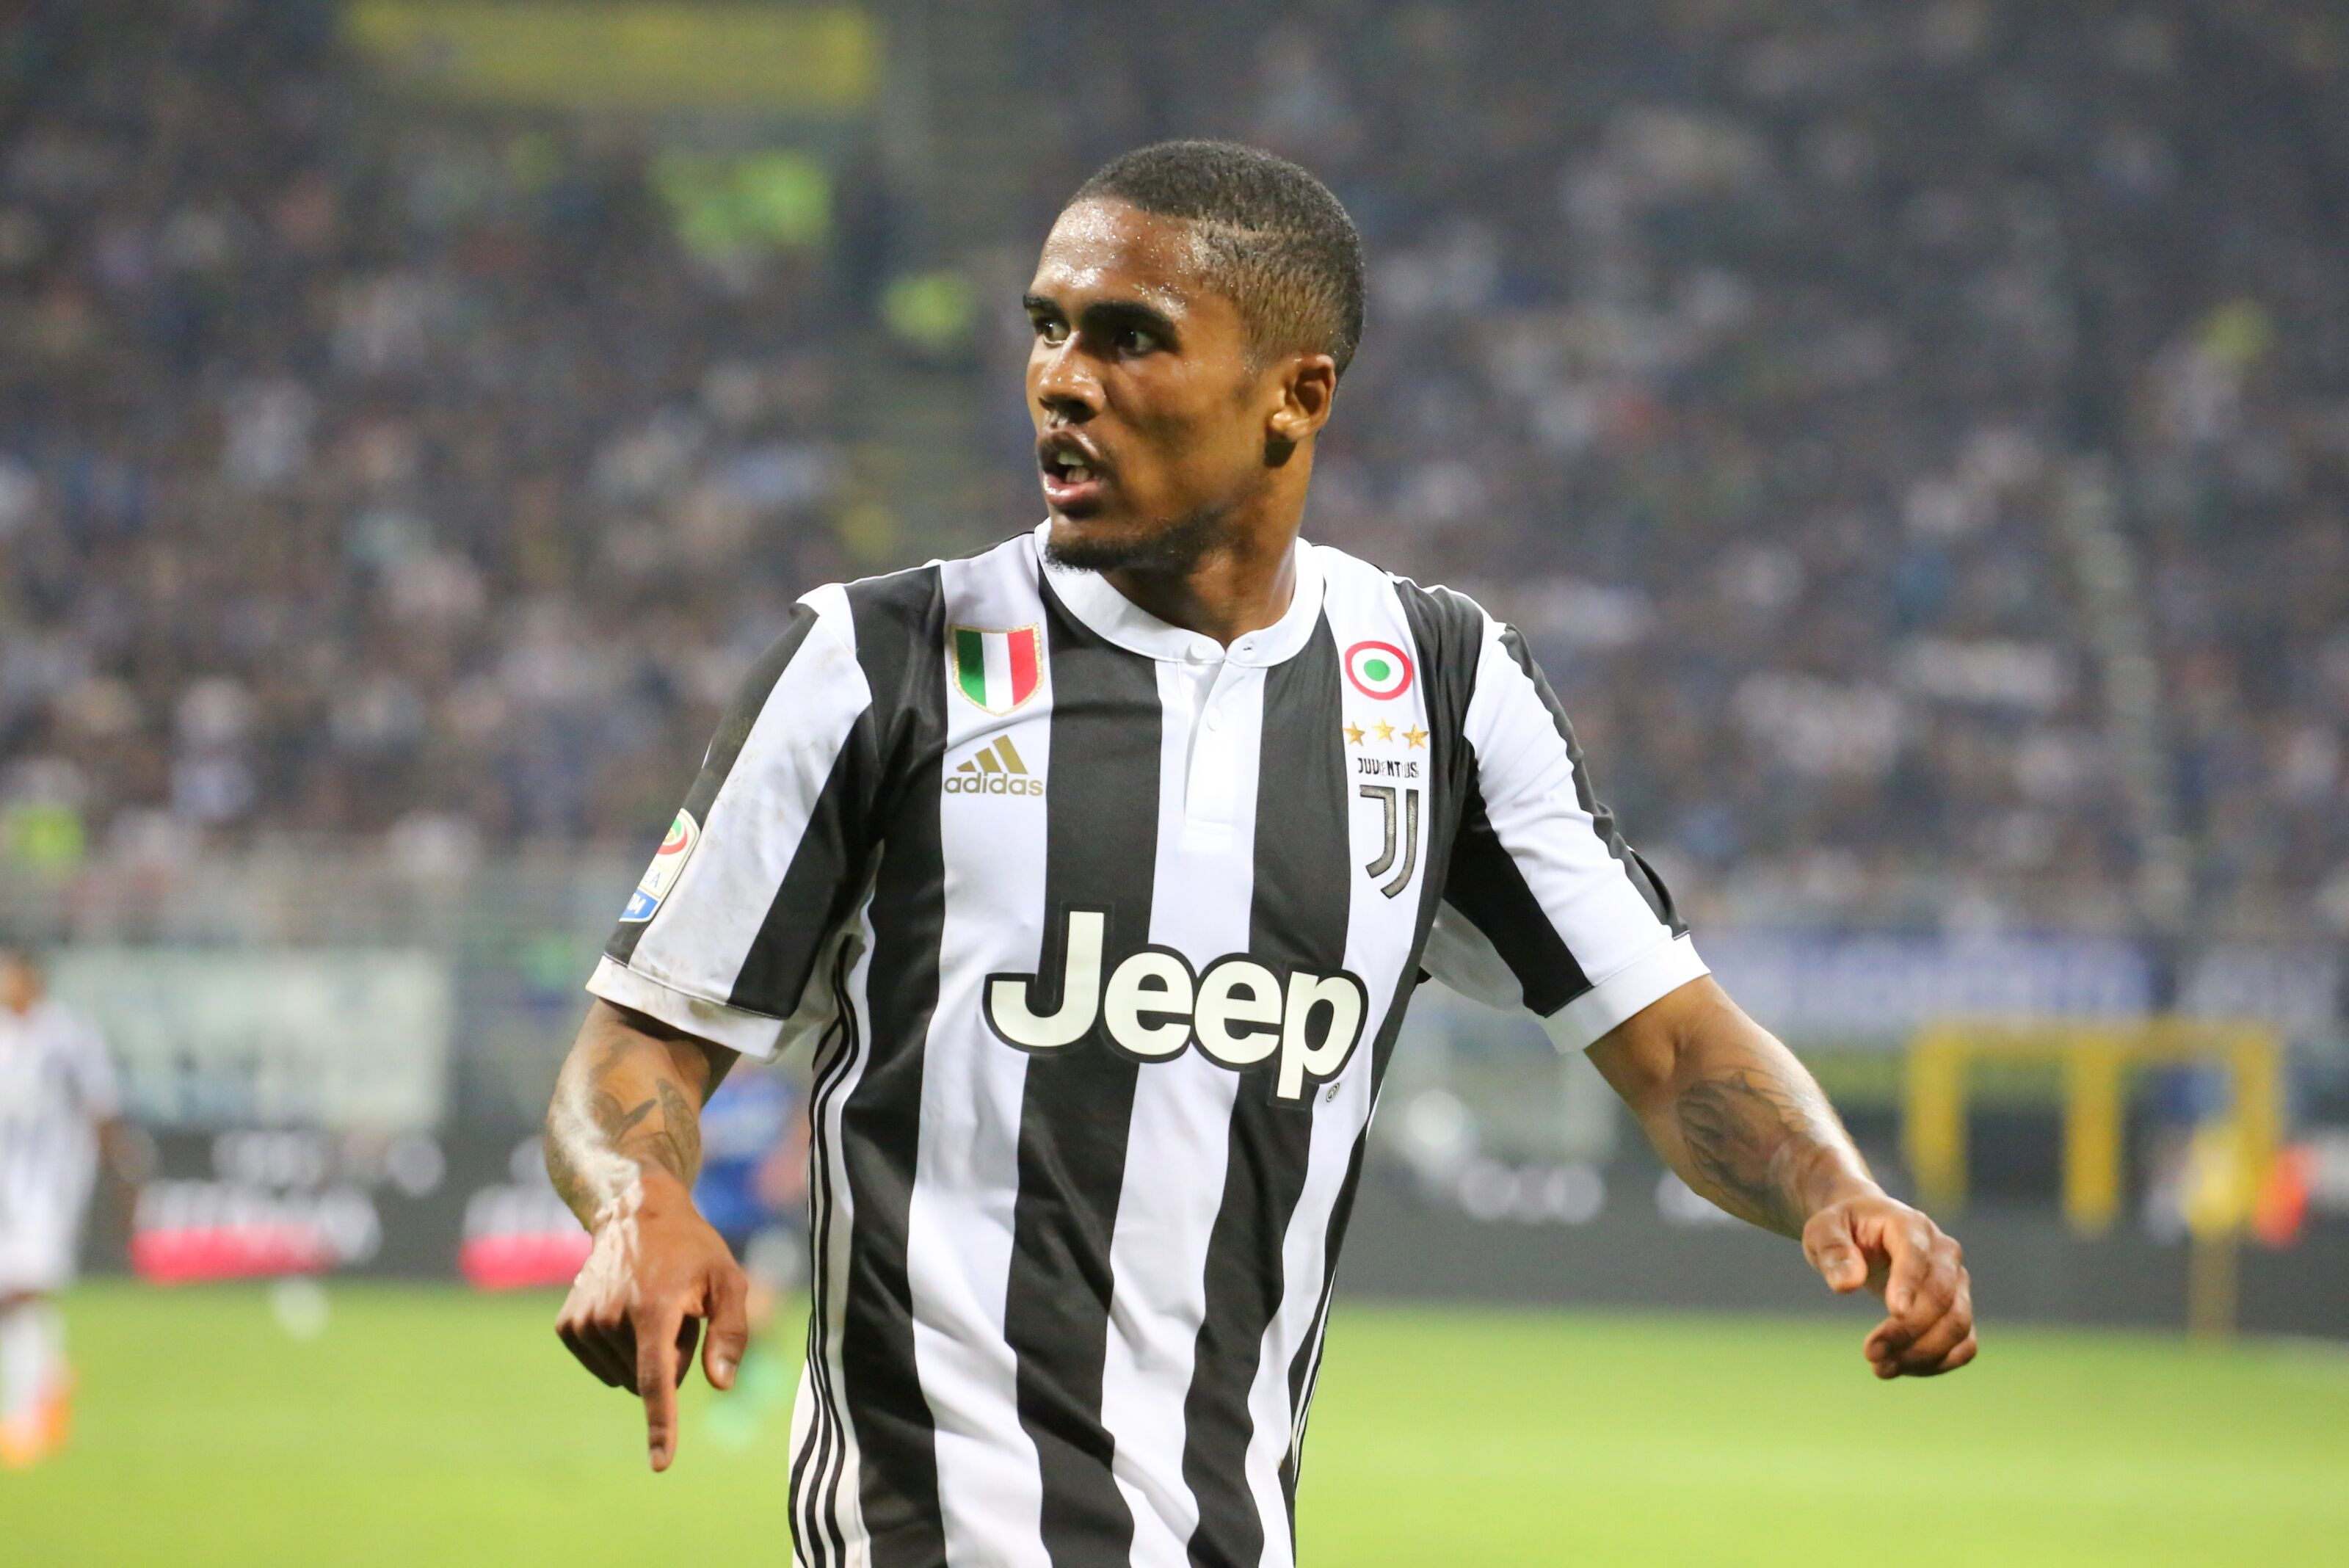 Massive transfer boost for Chelsea as Juventus finally agree to sell Douglas Costa